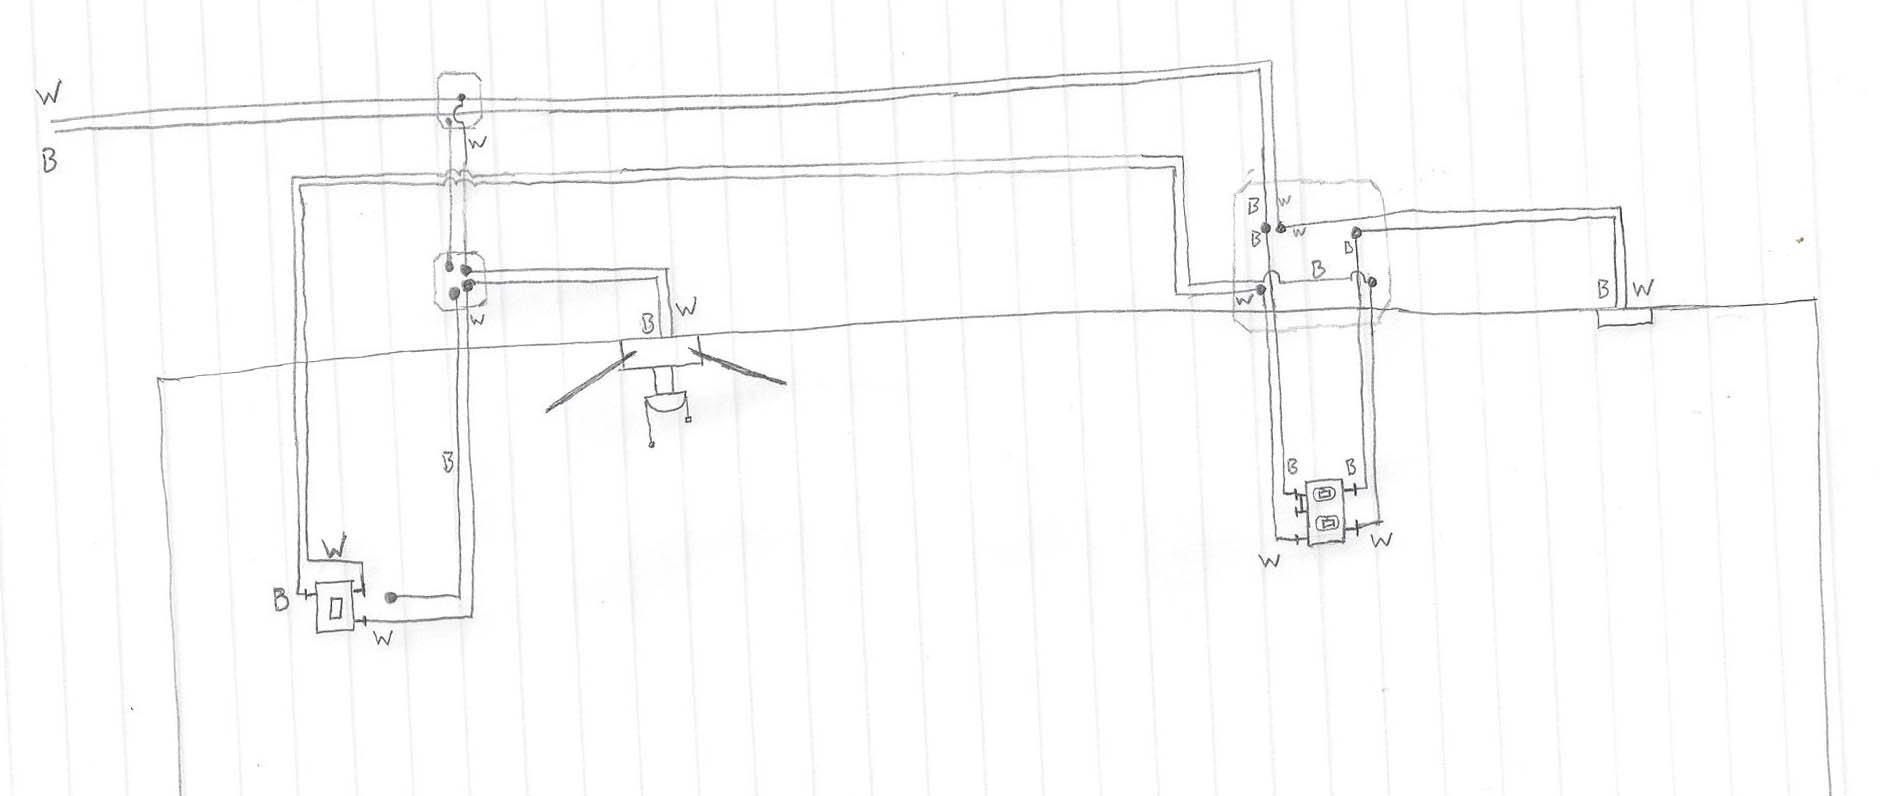 Wiring Diagram For 2 Stacked 3 Way Cwitches : 43 Wiring